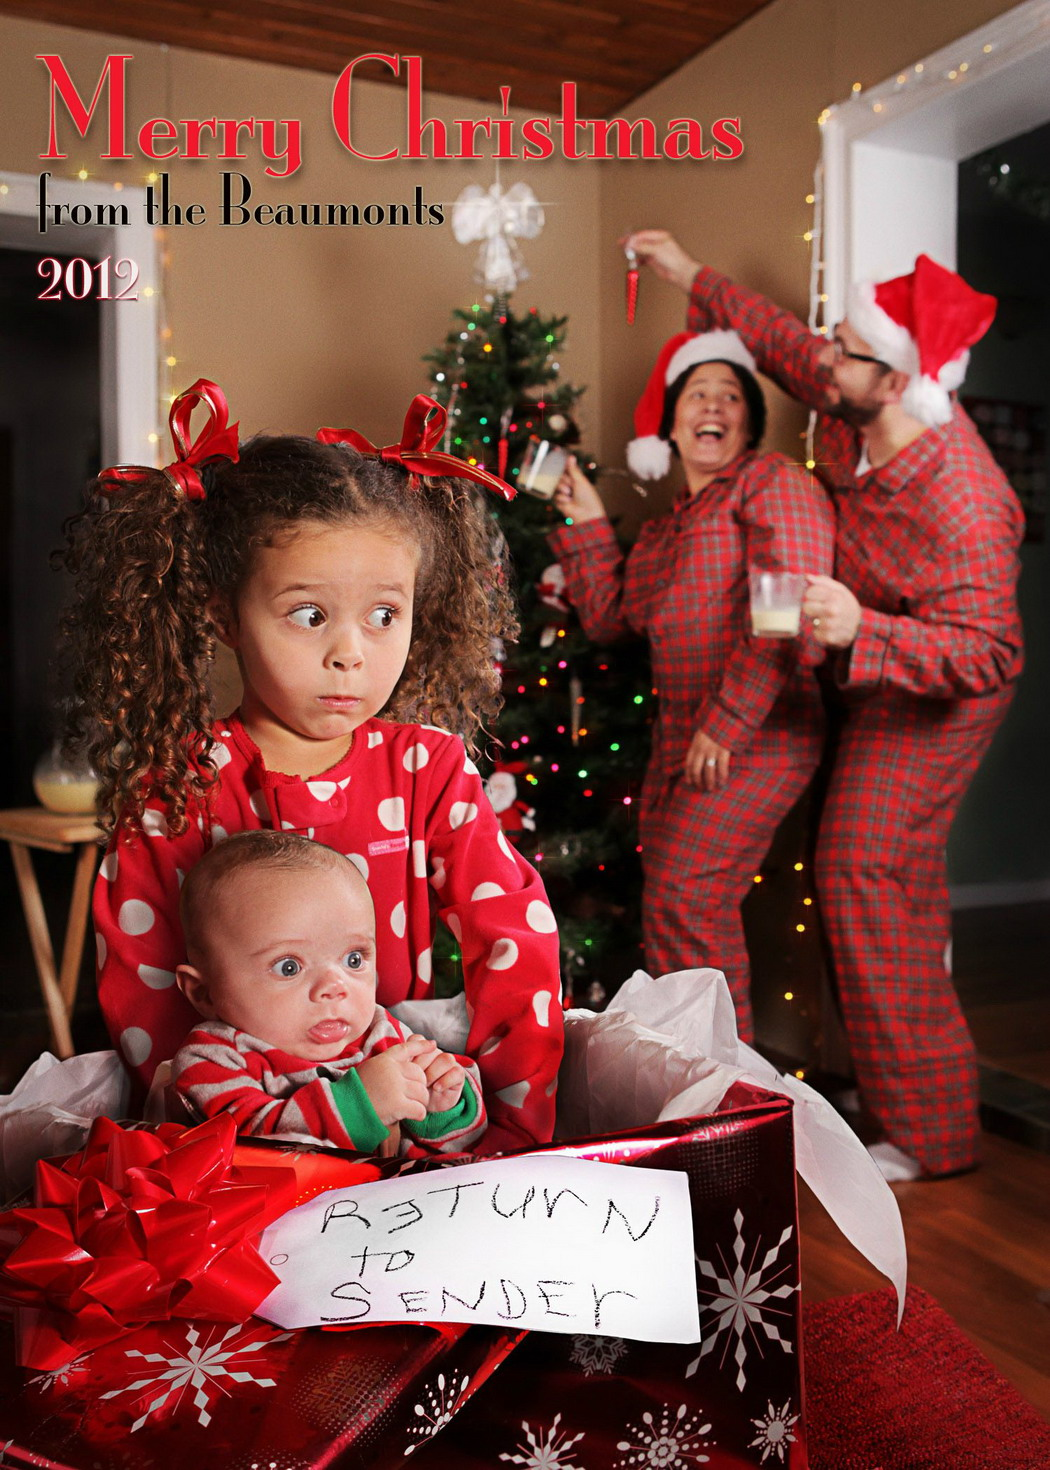 20 christmas cards that are beyond disturbing